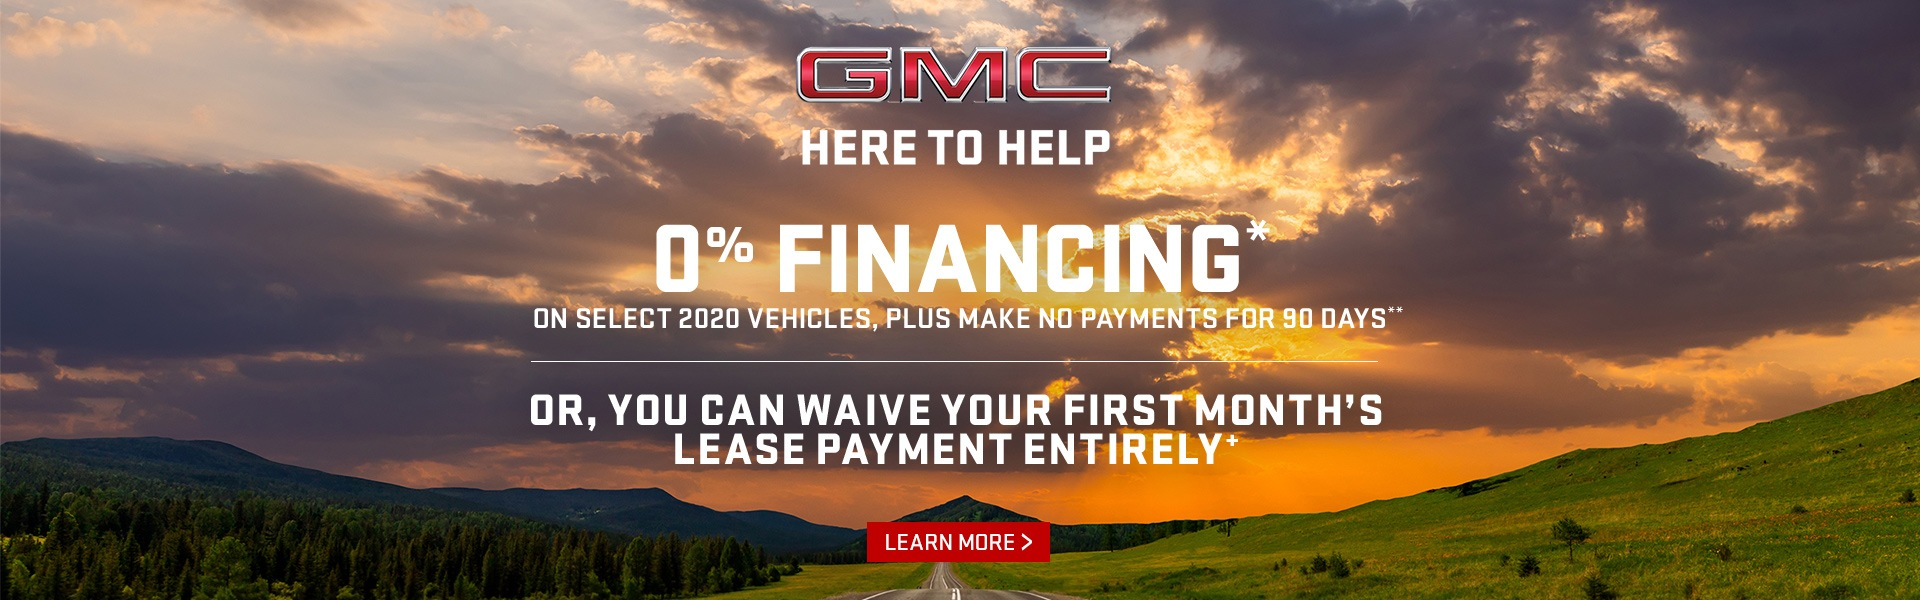 GMC Here to Help